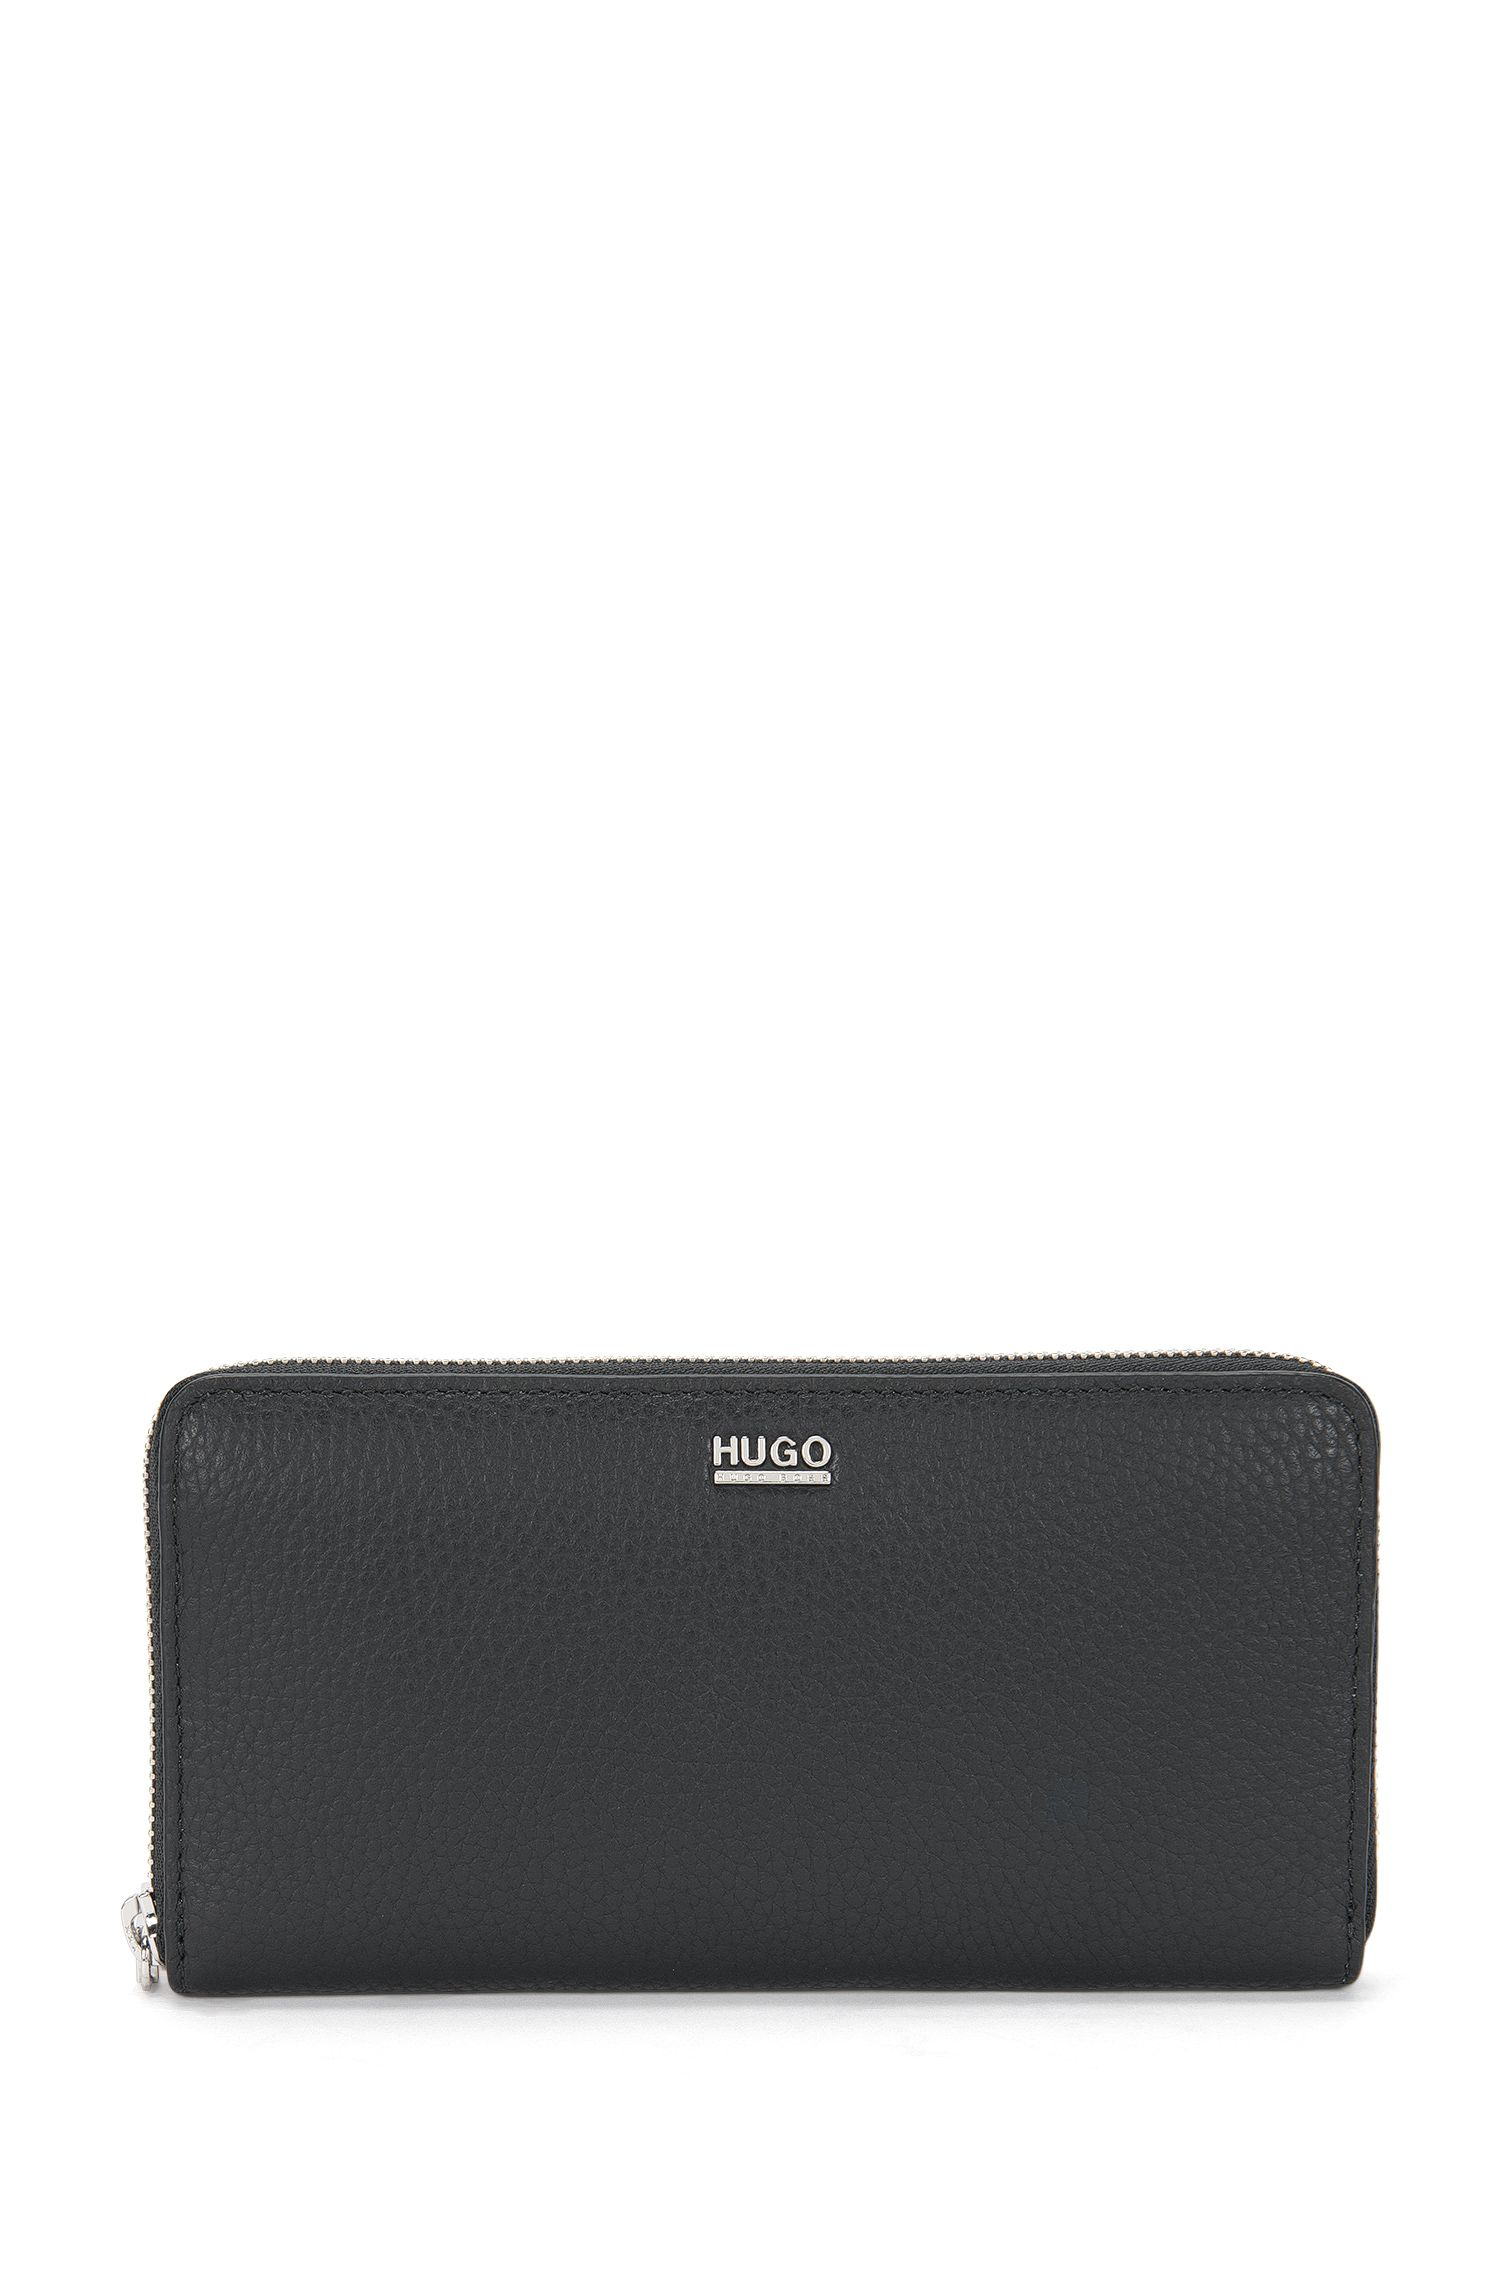 Zip-around wallet in textured Italian leather